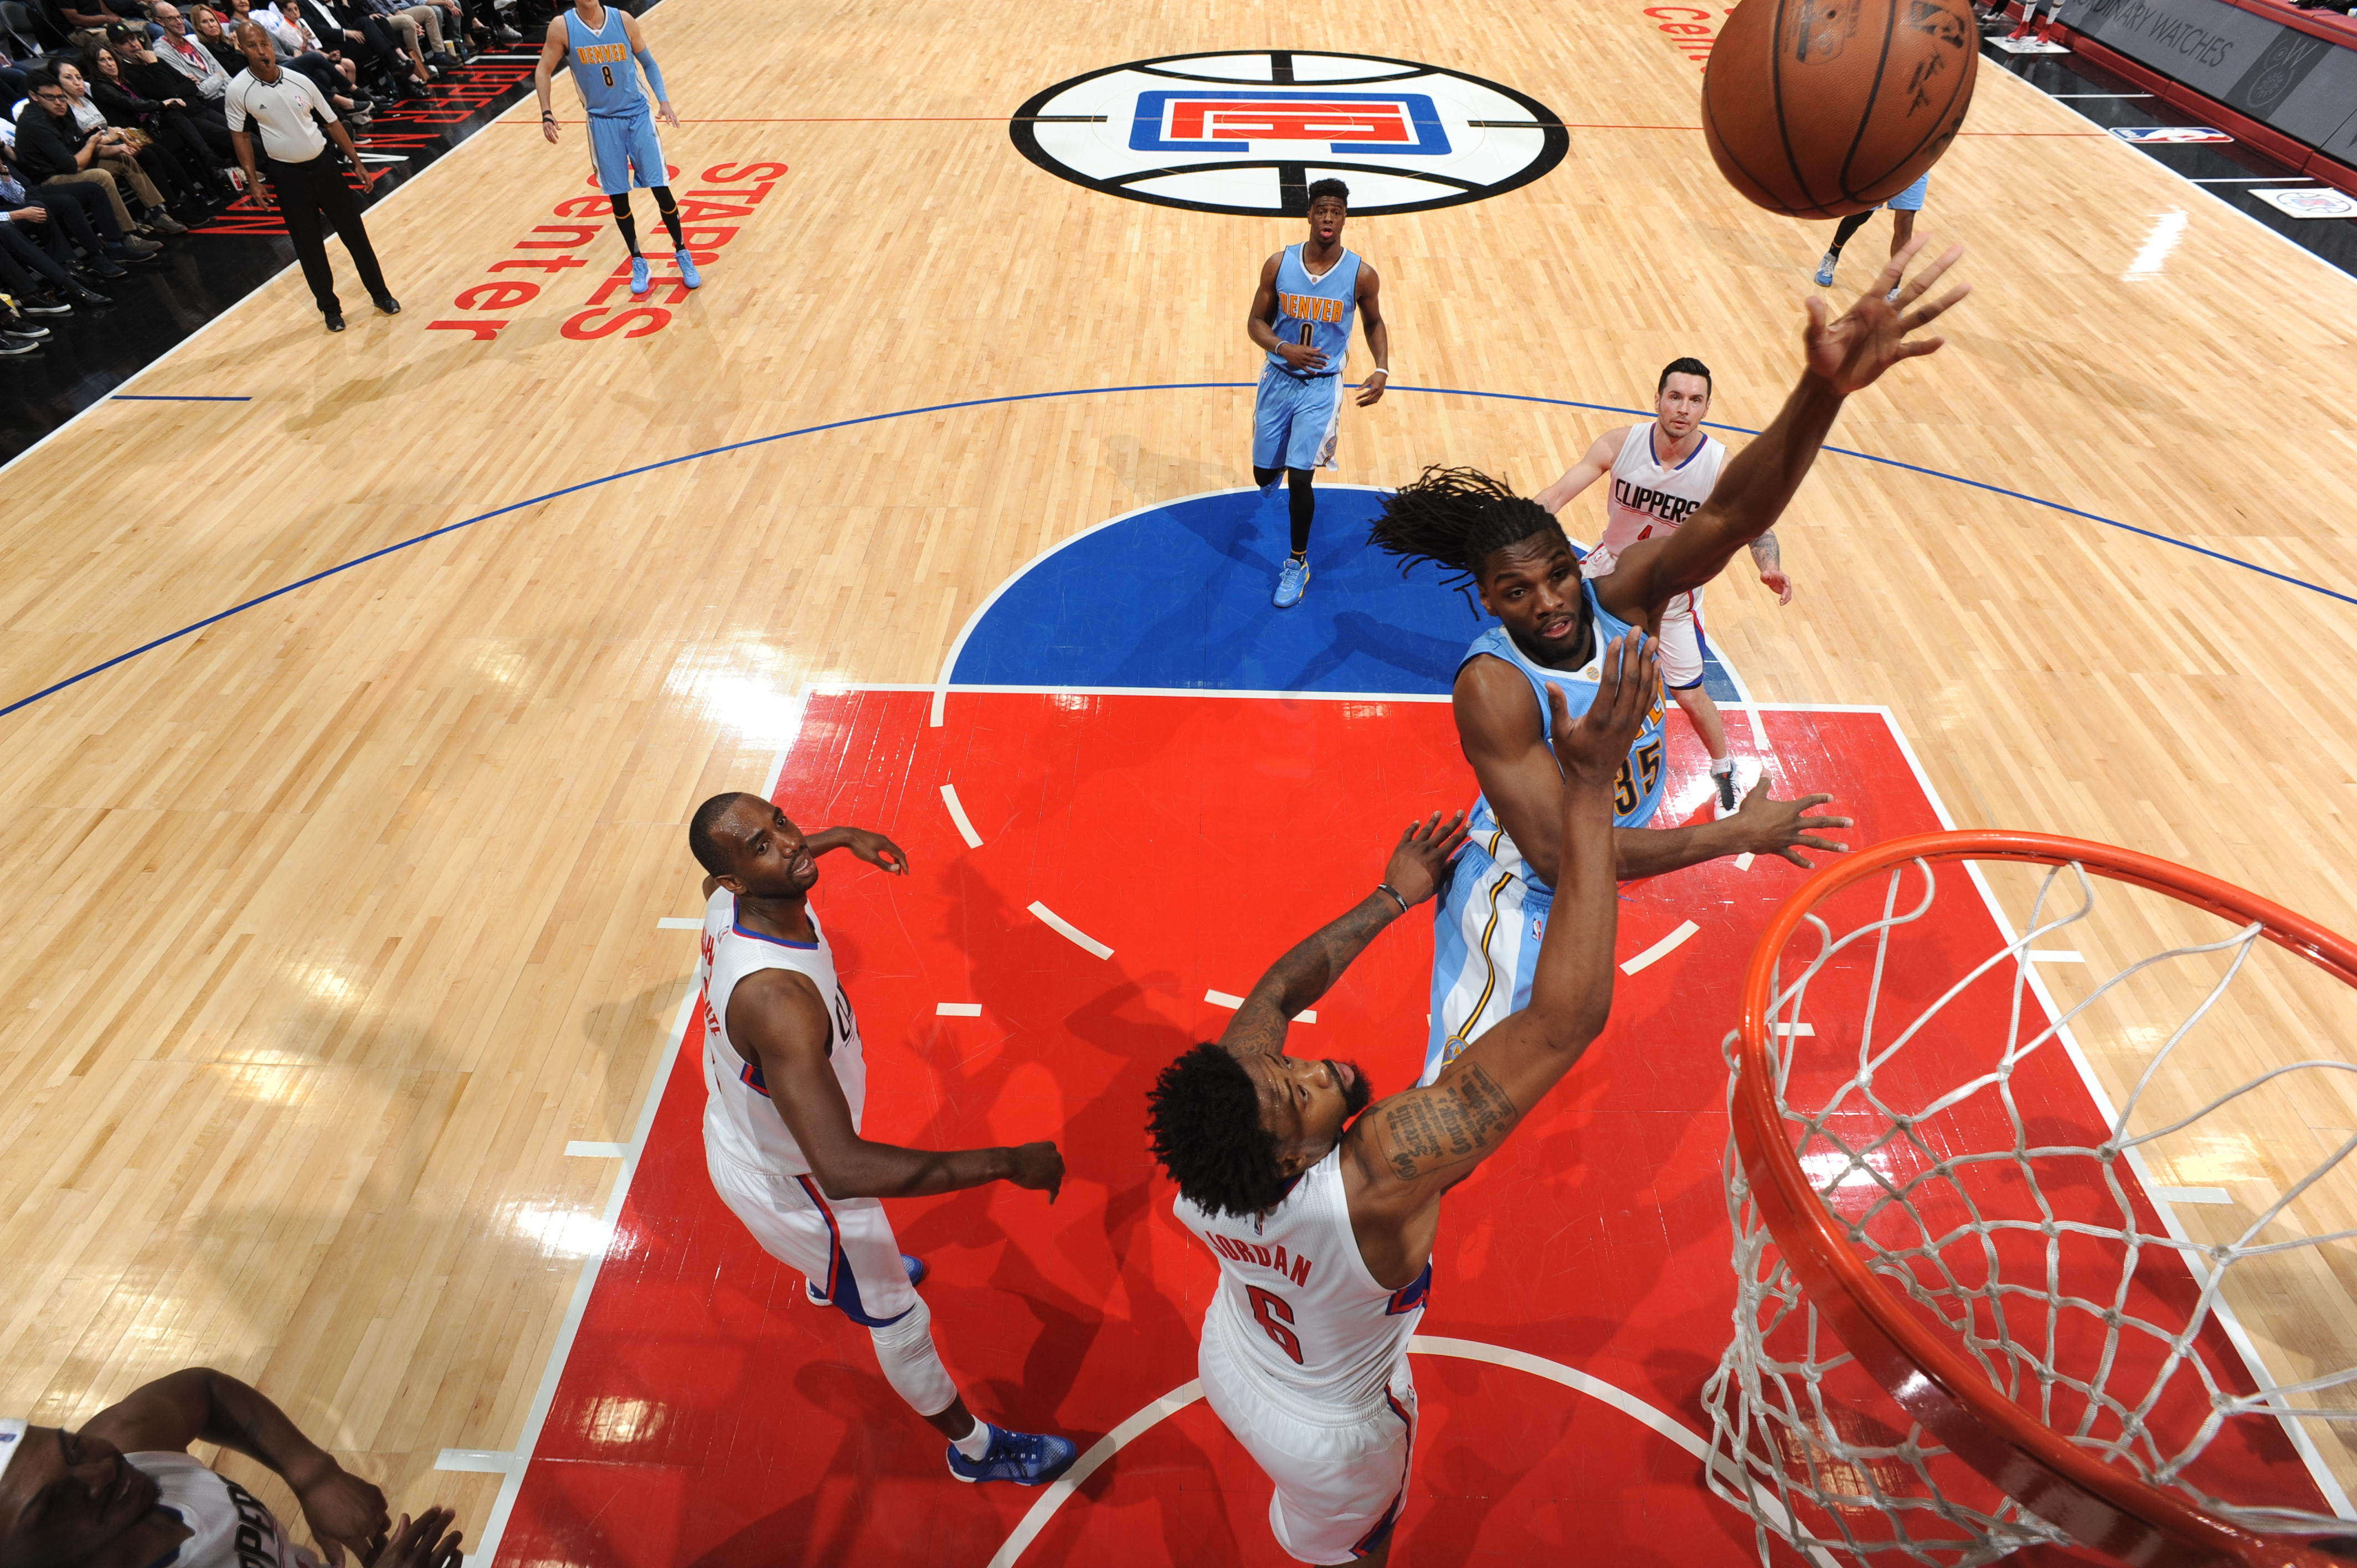 LOS ANGELES, CA - FEBRUARY 24: Kenneth Faried #35 of the Denver Nuggets hooks the shot against the Los Angeles Clippers during the game on February 24, 2016 at STAPLES Center in Los Angeles, California. (Photo by Andrew D. Bernstein/NBAE via Getty Images)